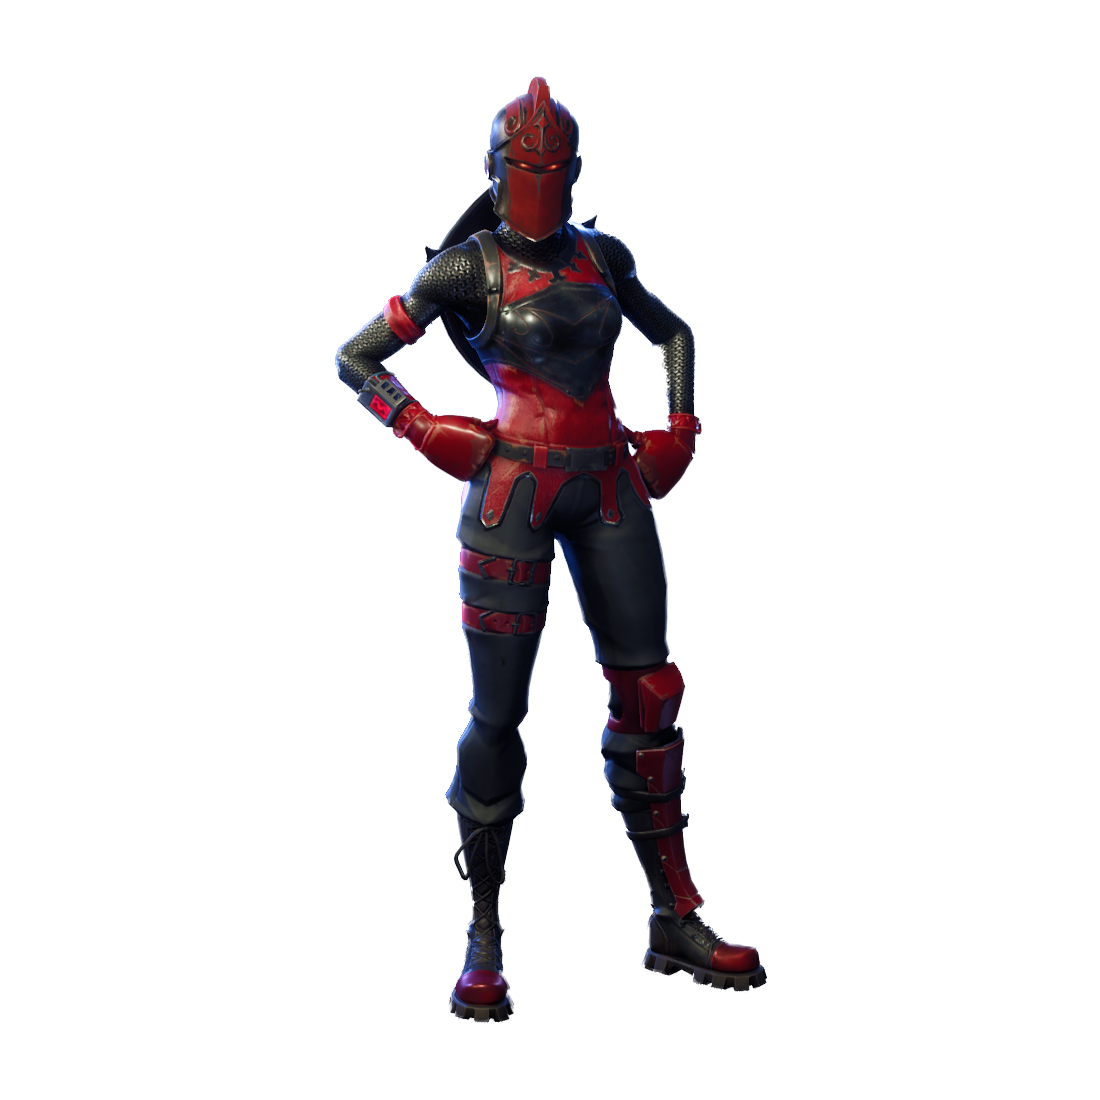 Red knight fortnite png. Image purepng free transparent